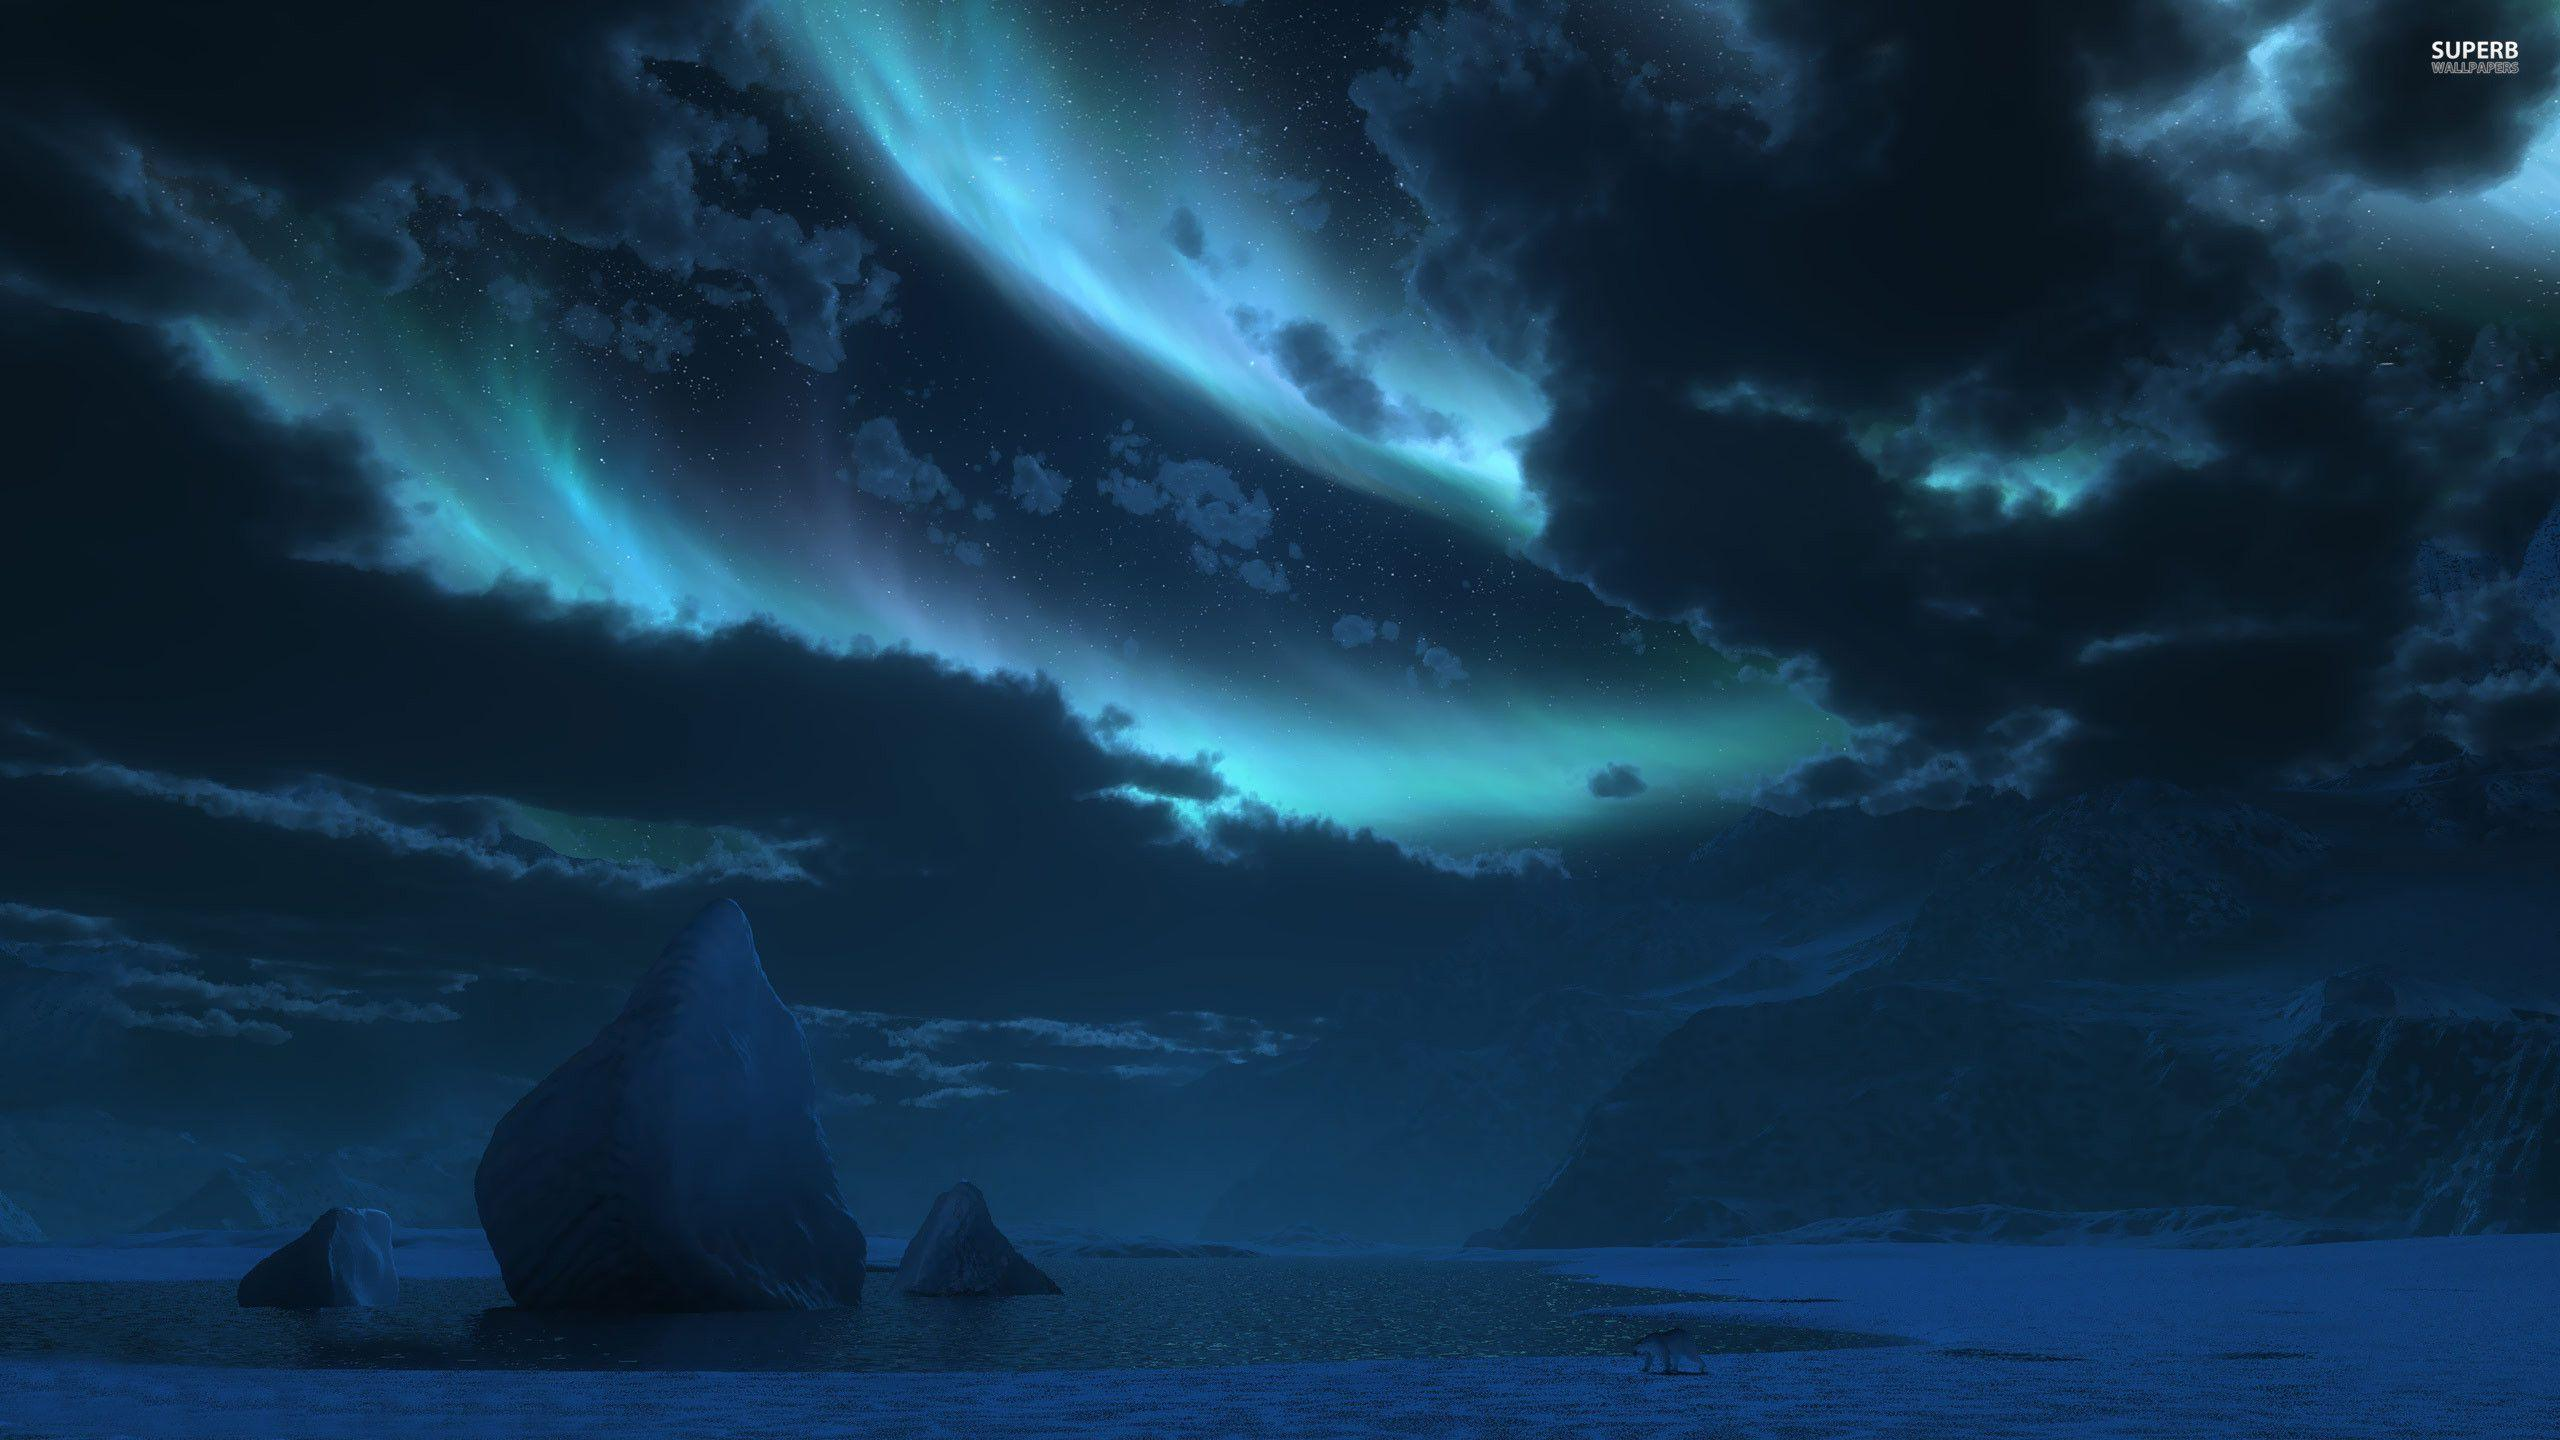 antarctica and clouds wallpaper - photo #2